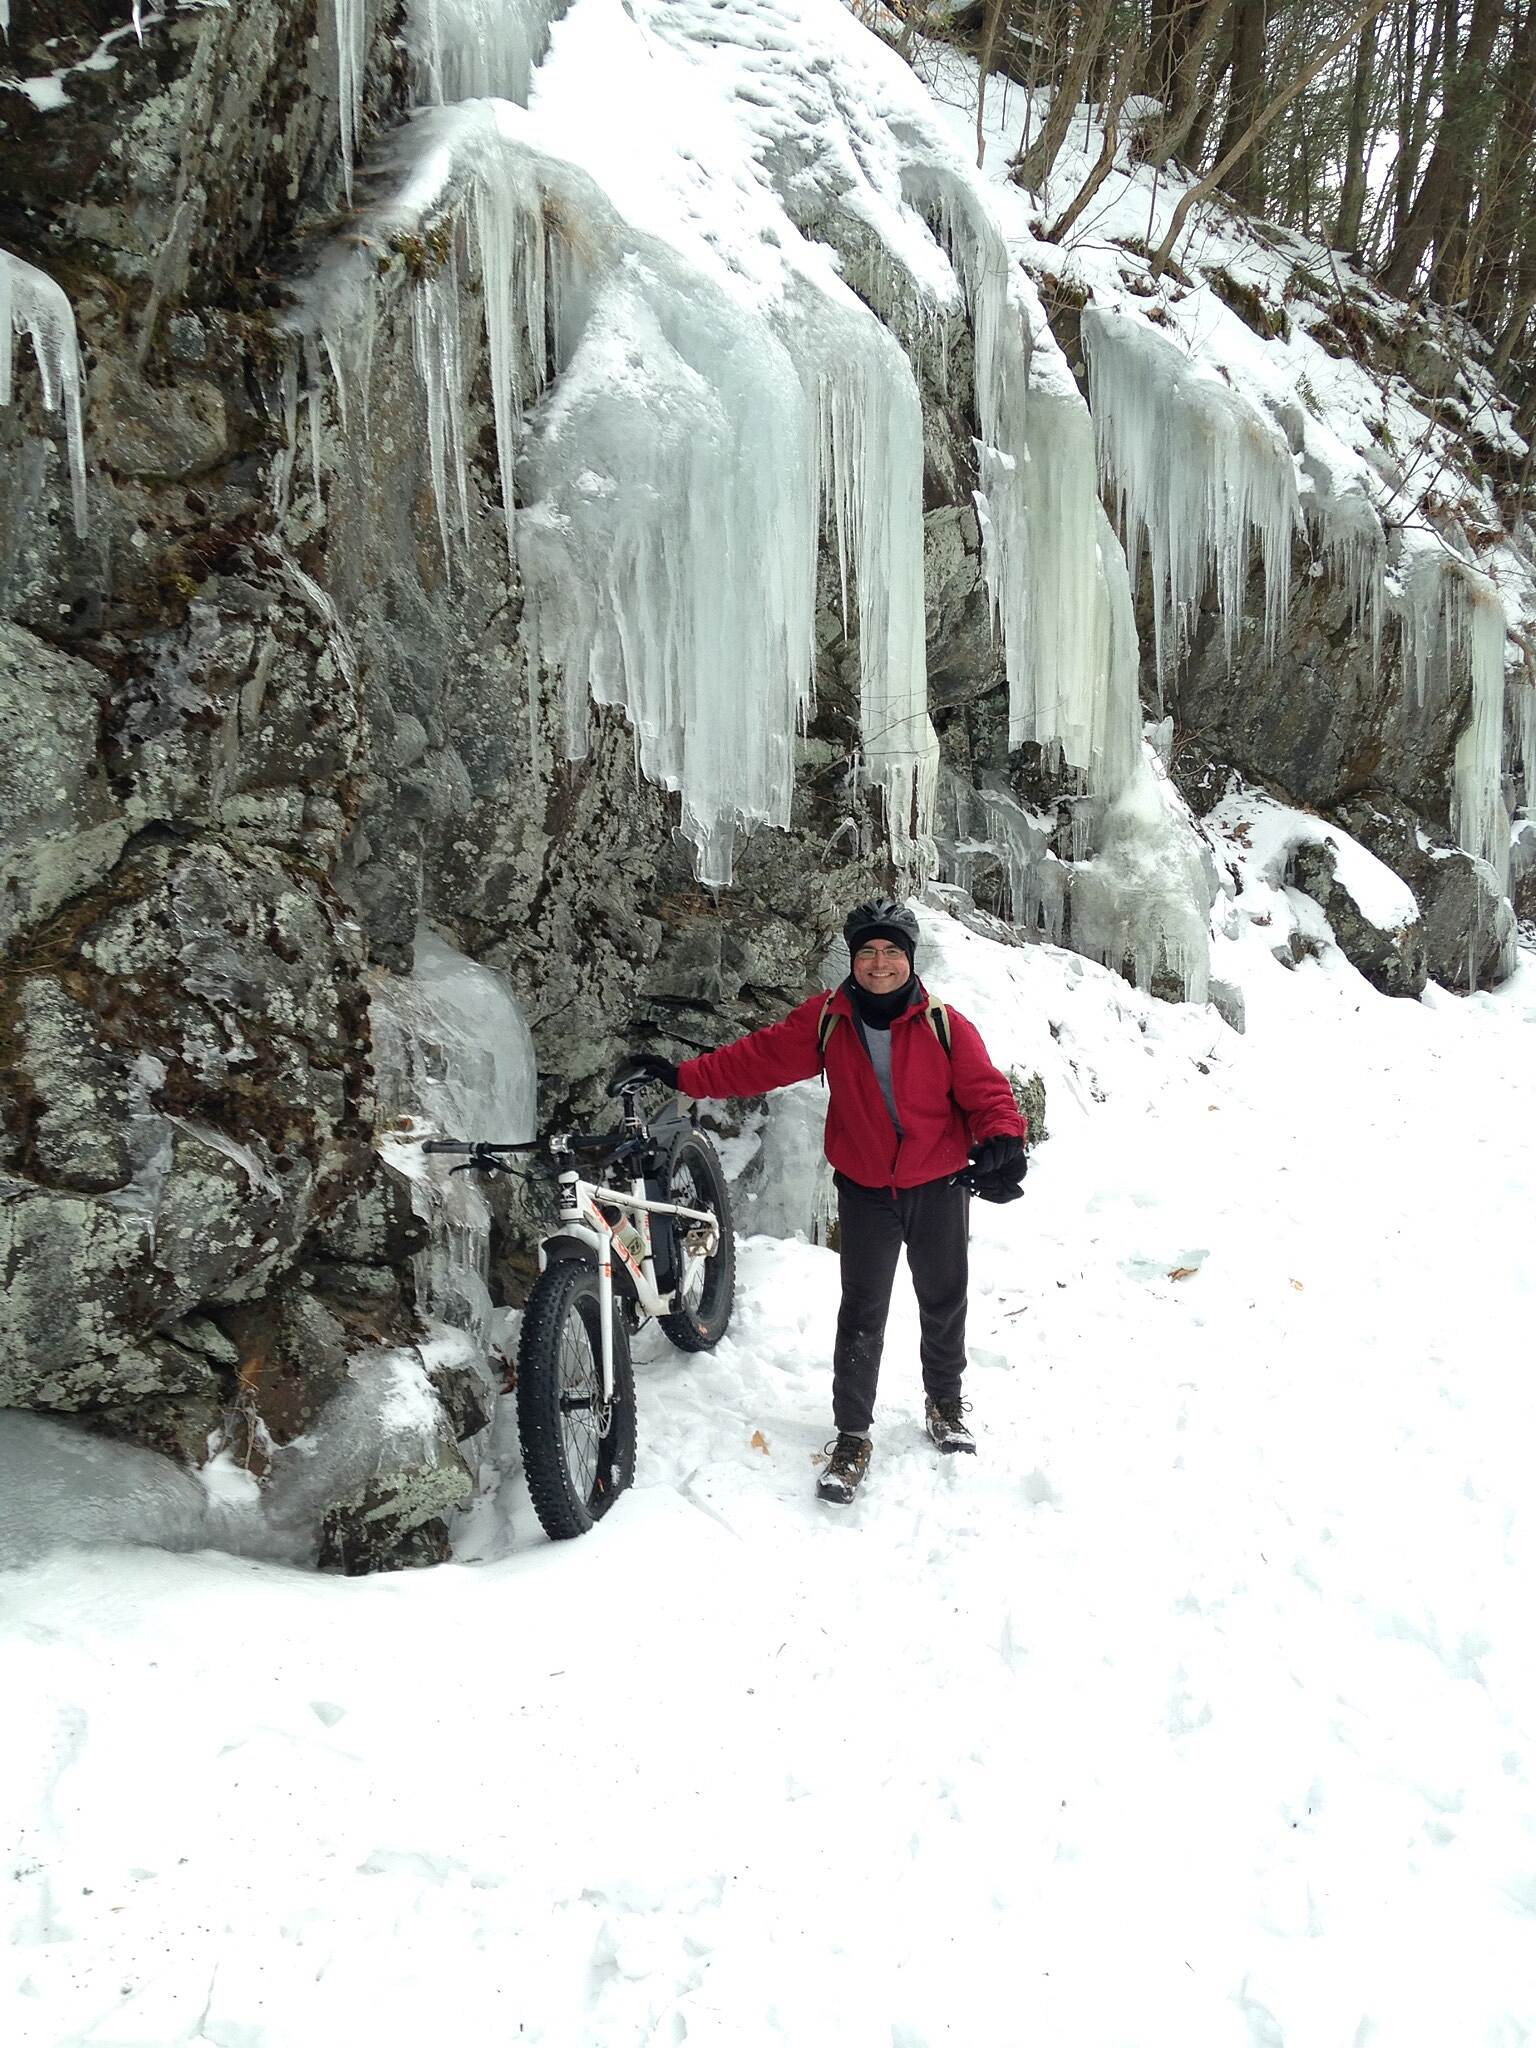 Columbia Trail Icefalls on Columbia Trail! The Columbia Trail was GREAT for fat-biking after the recent snowstorm.